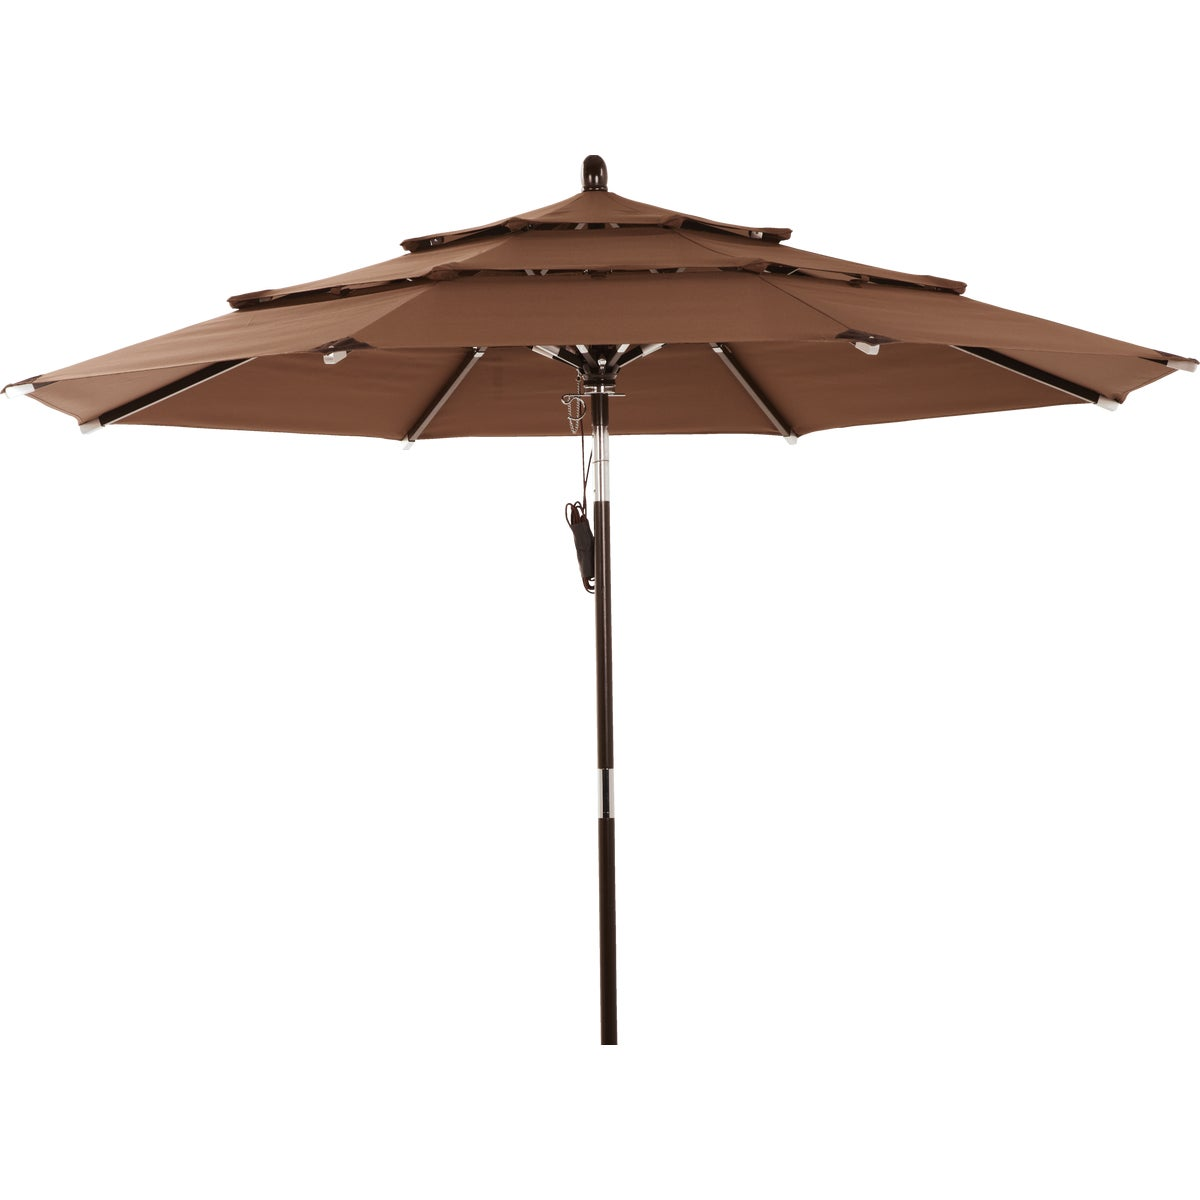 THREE-TIER UMBRELLA BRN - TJWU-007-270 BRN by Do it Best